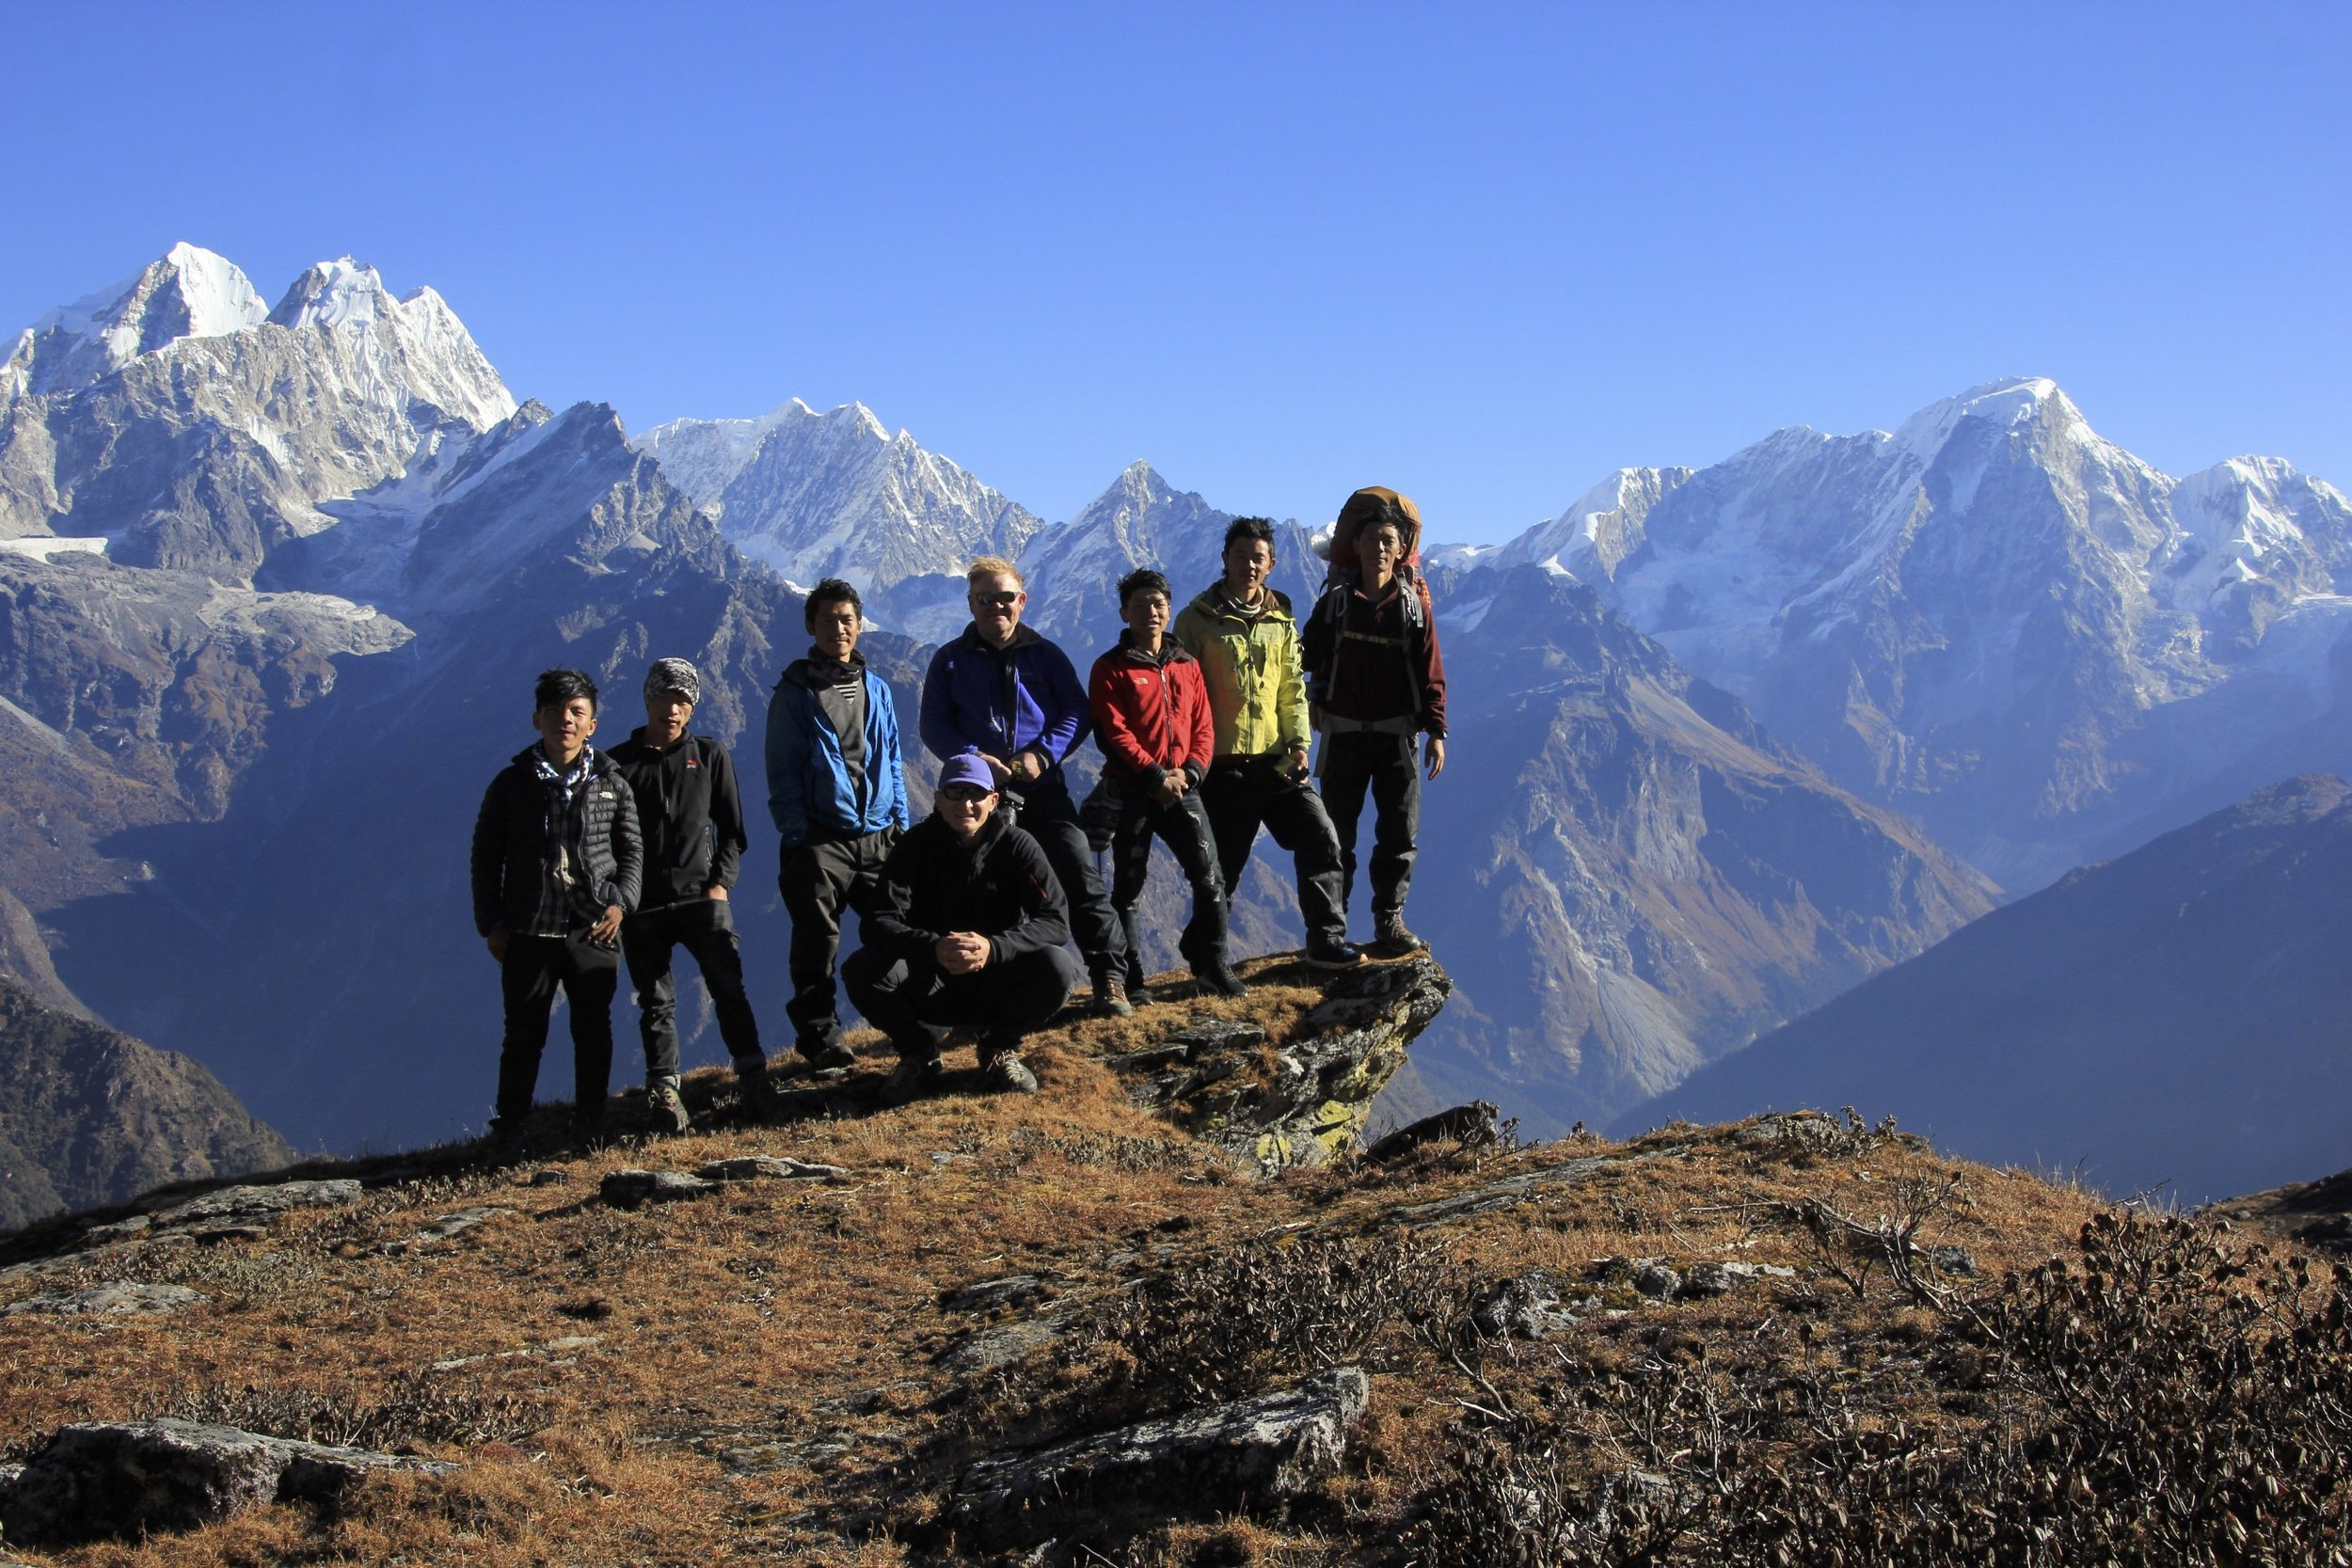 Our entire crew in front of the magnificent panorama of the Jugal Himal from Panch Pokari at 4,250m.